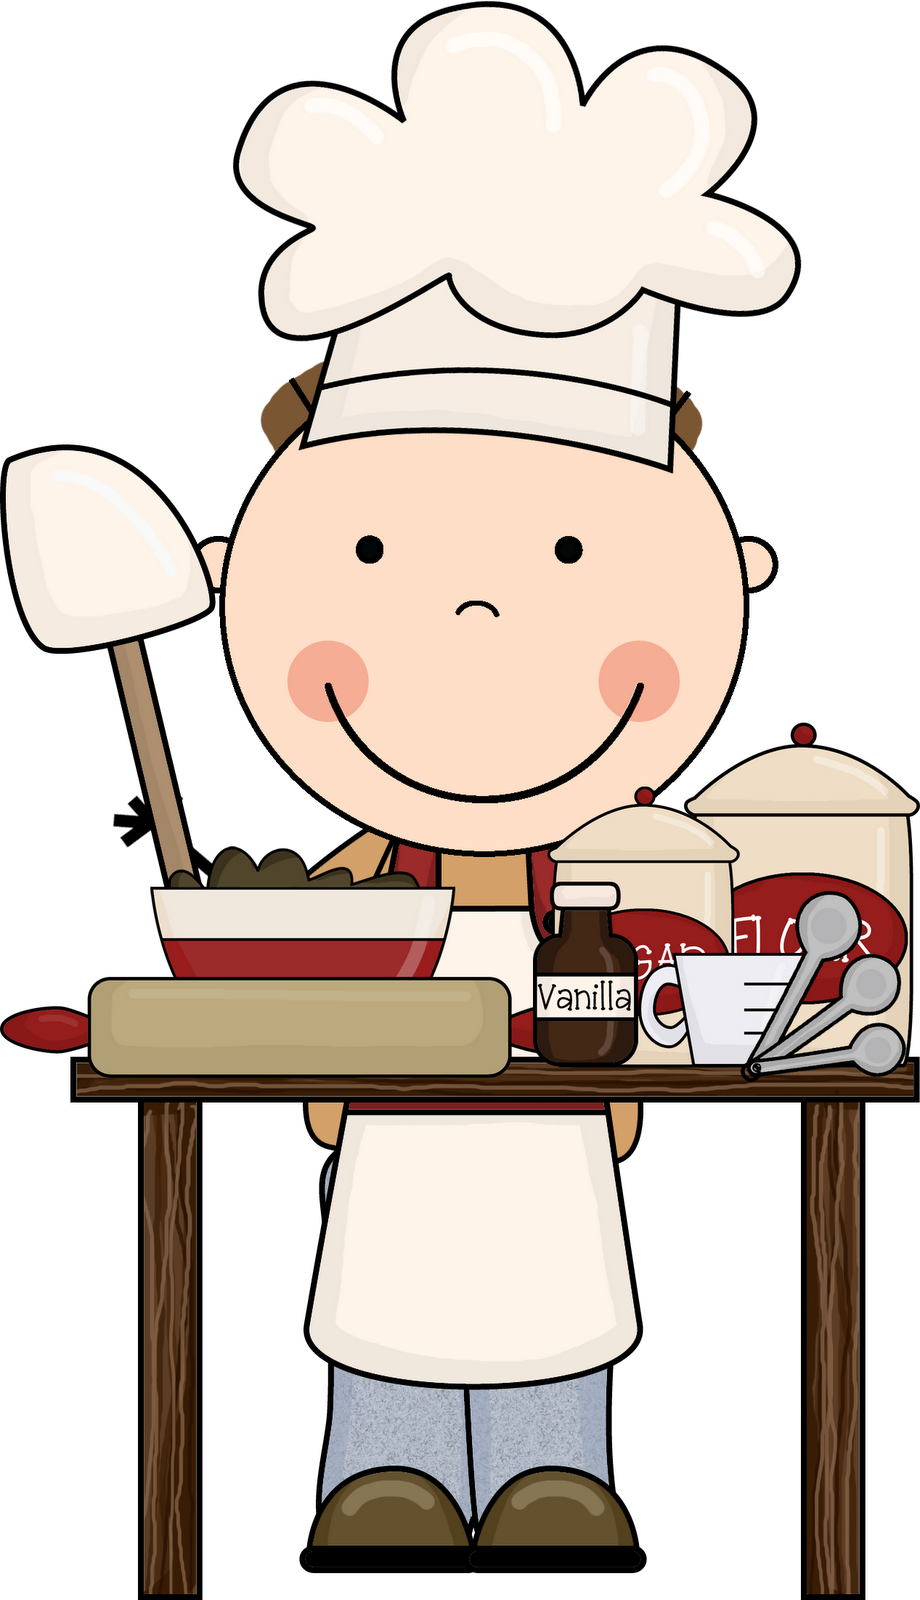 Cooking cat clipart graphic Sample Image From Scrappindoodles This Was The Line I Used In The ... graphic